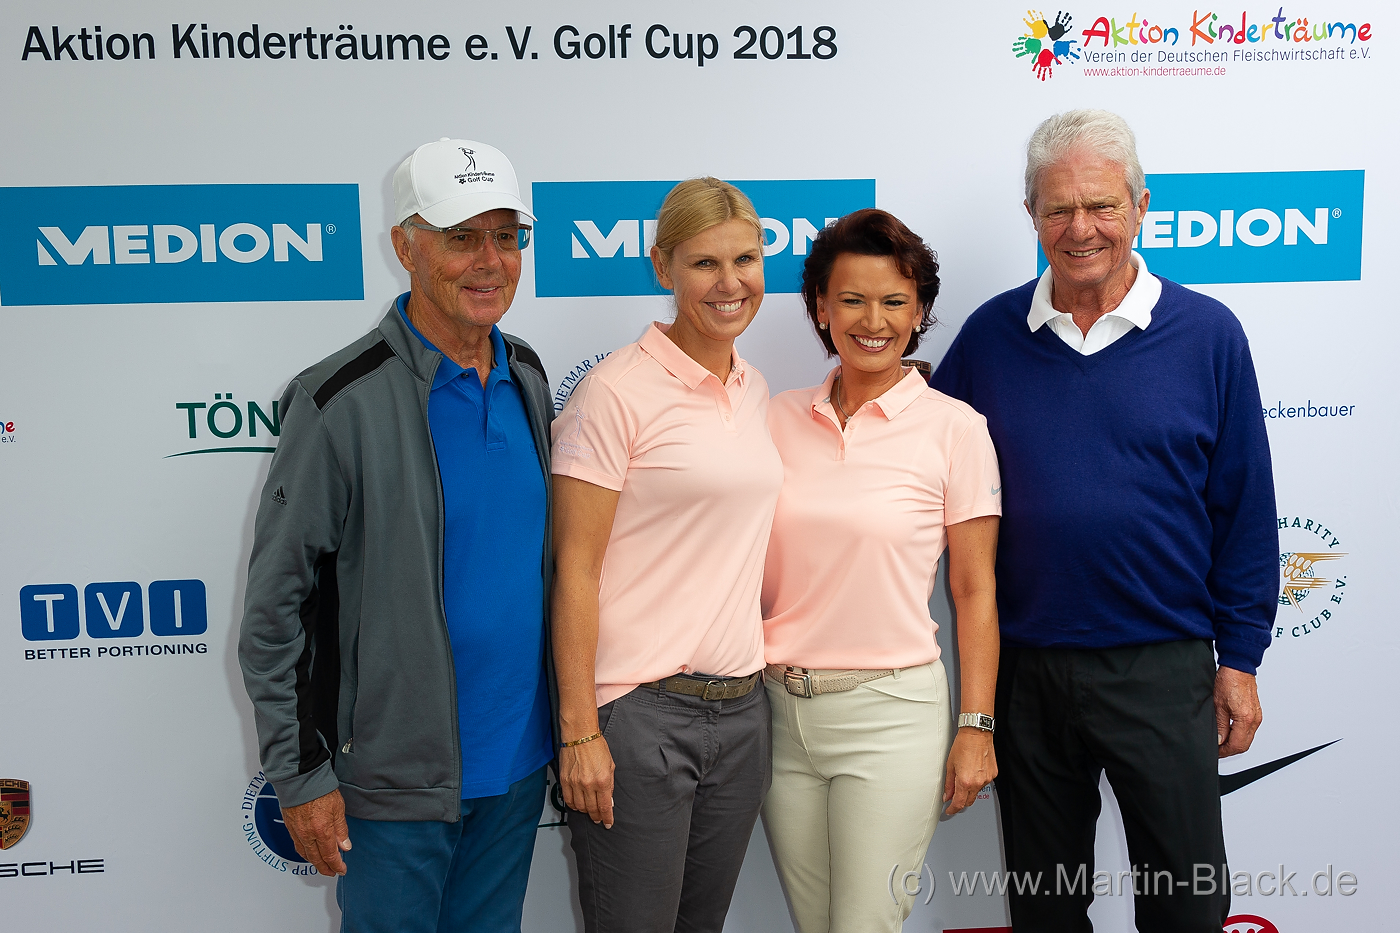 bilder vom aktion kindertr ume golf cup 2018 in st leon. Black Bedroom Furniture Sets. Home Design Ideas